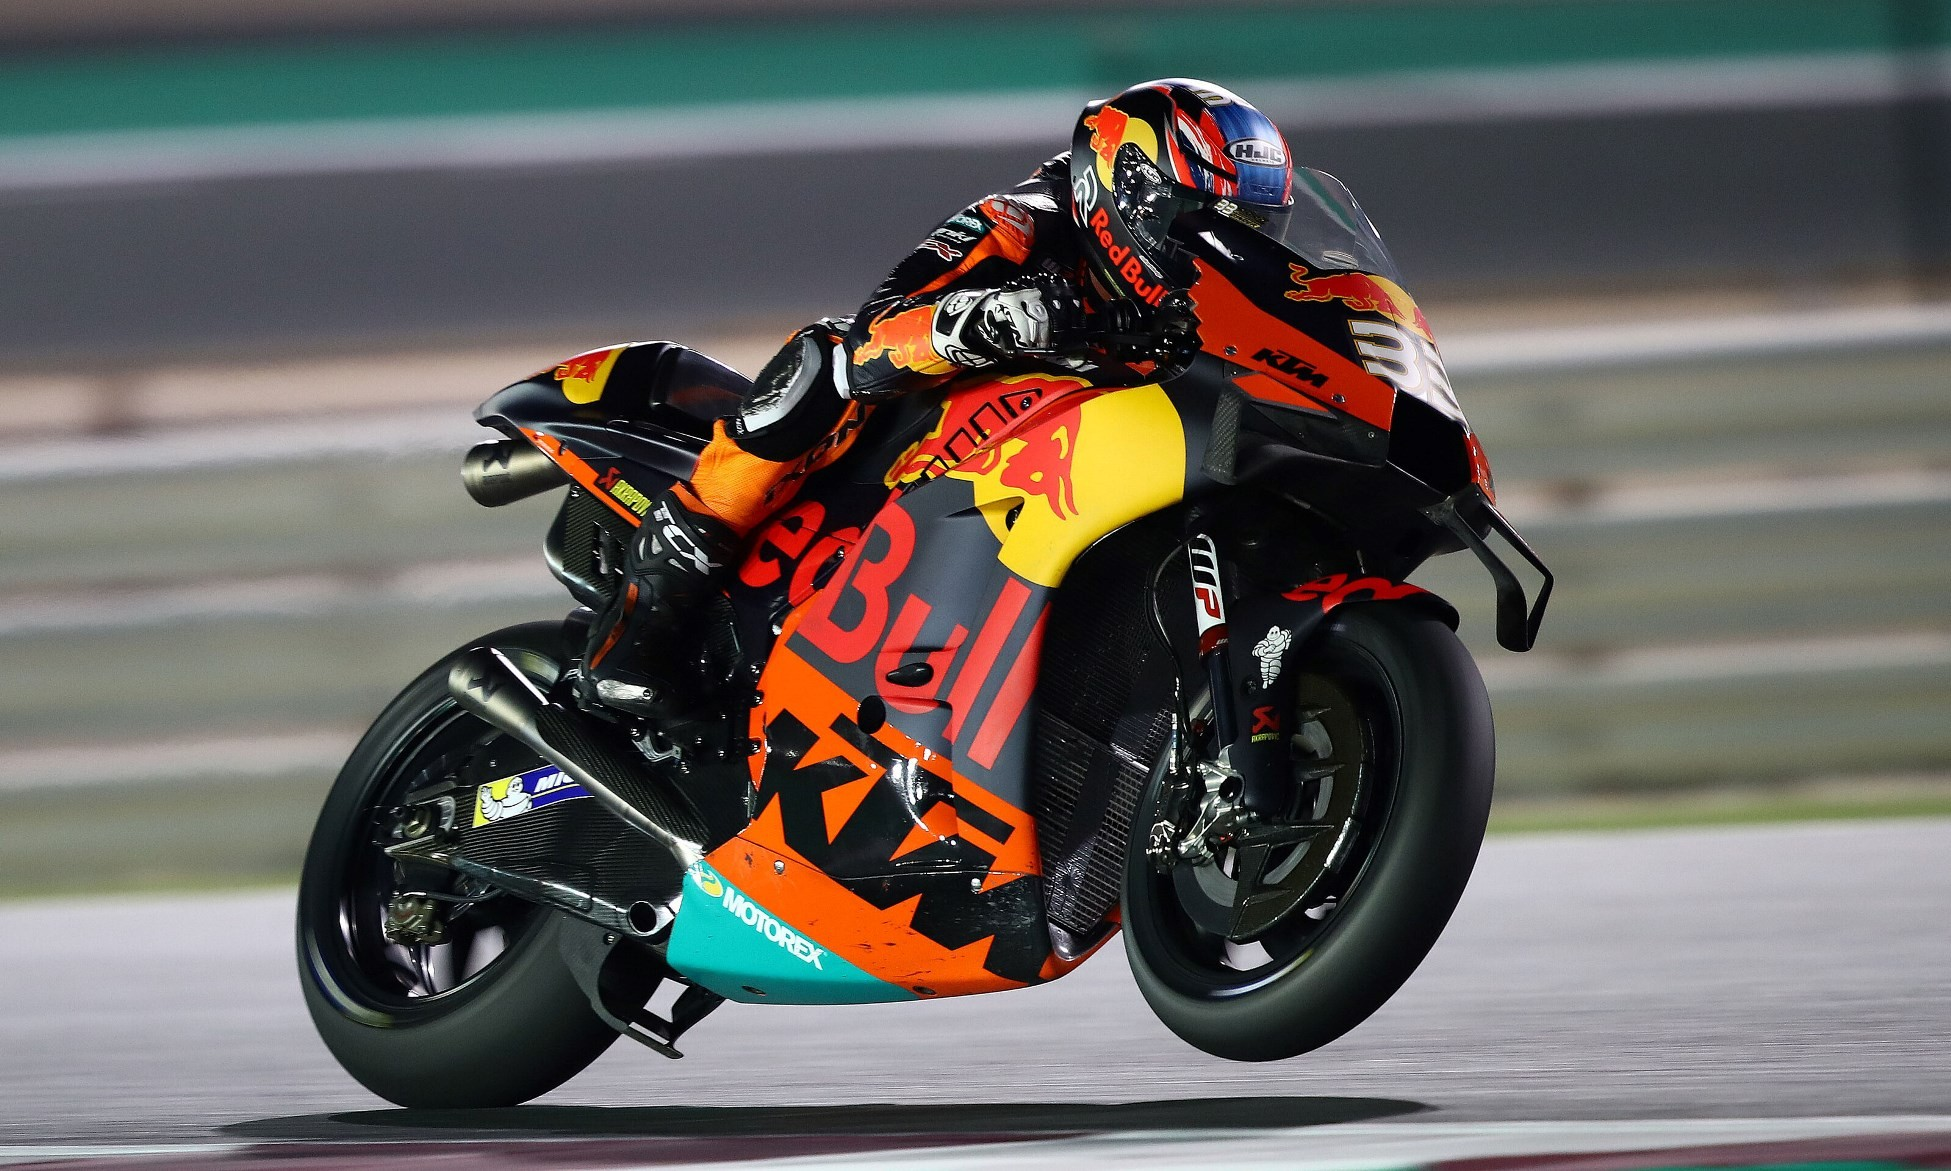 MotoGP Debut For Brad Binder 3